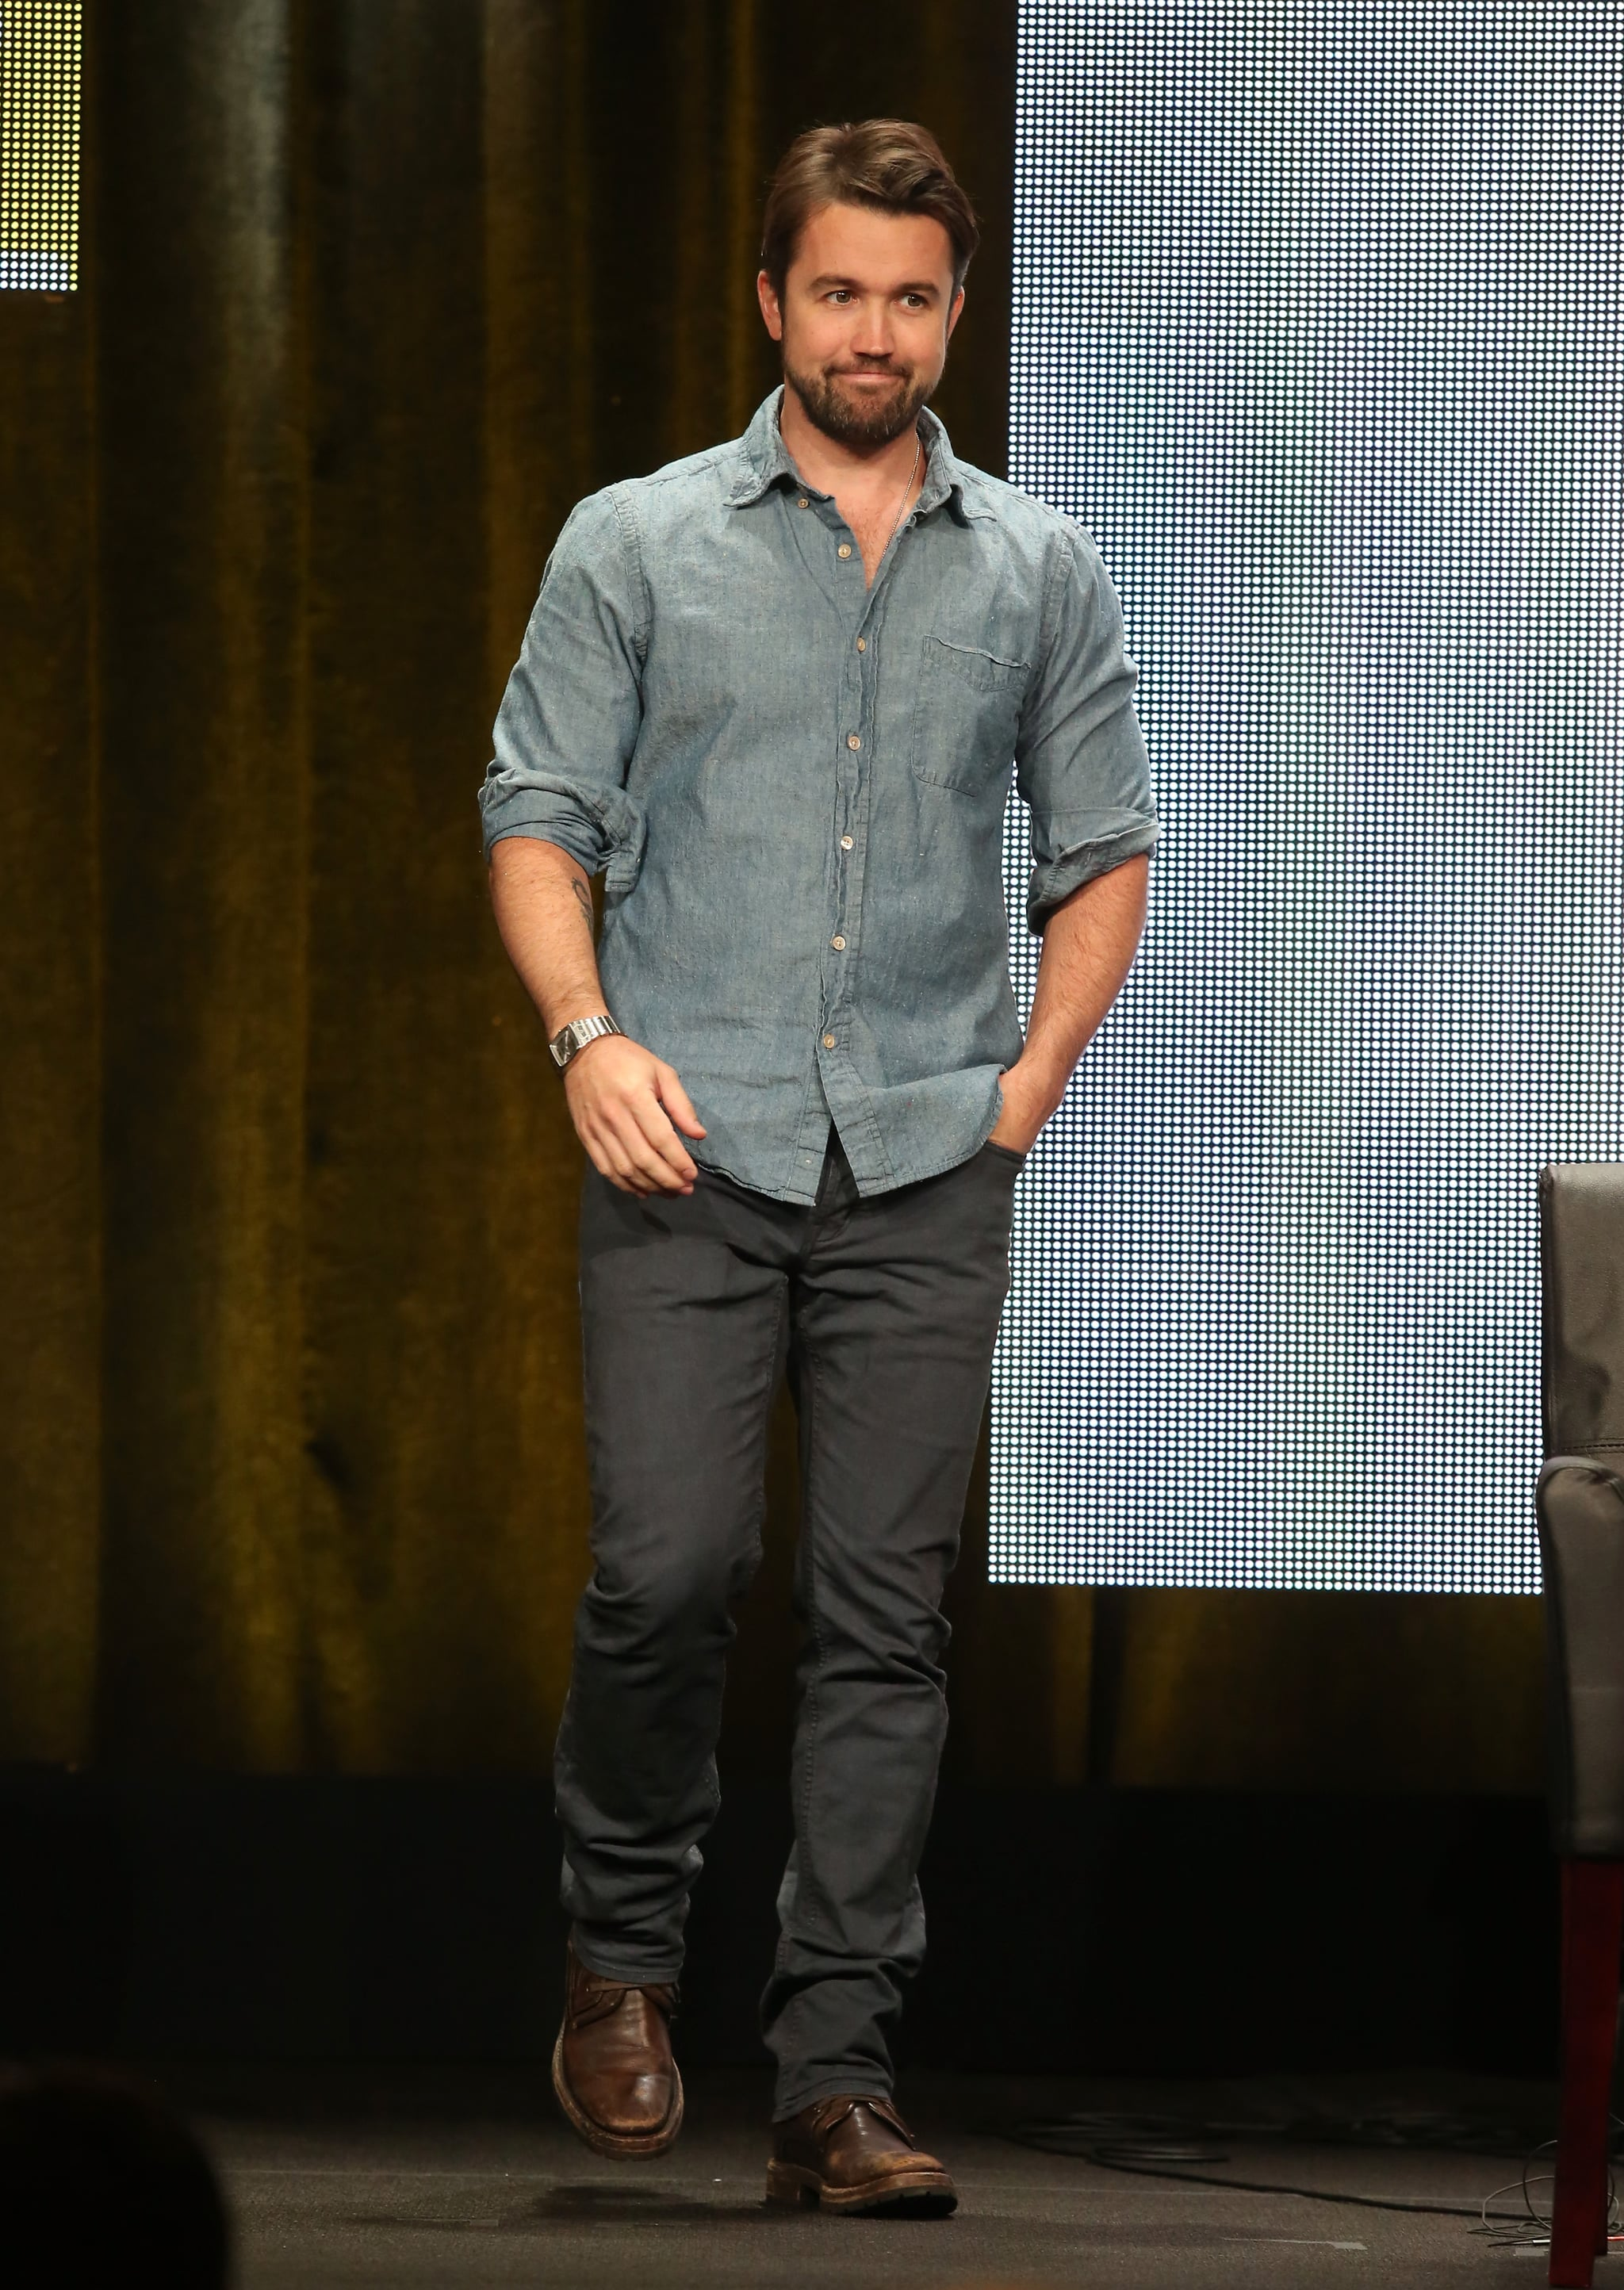 Rob McElhenney dished about the new season of It's Always Sunny in Philadelphia.